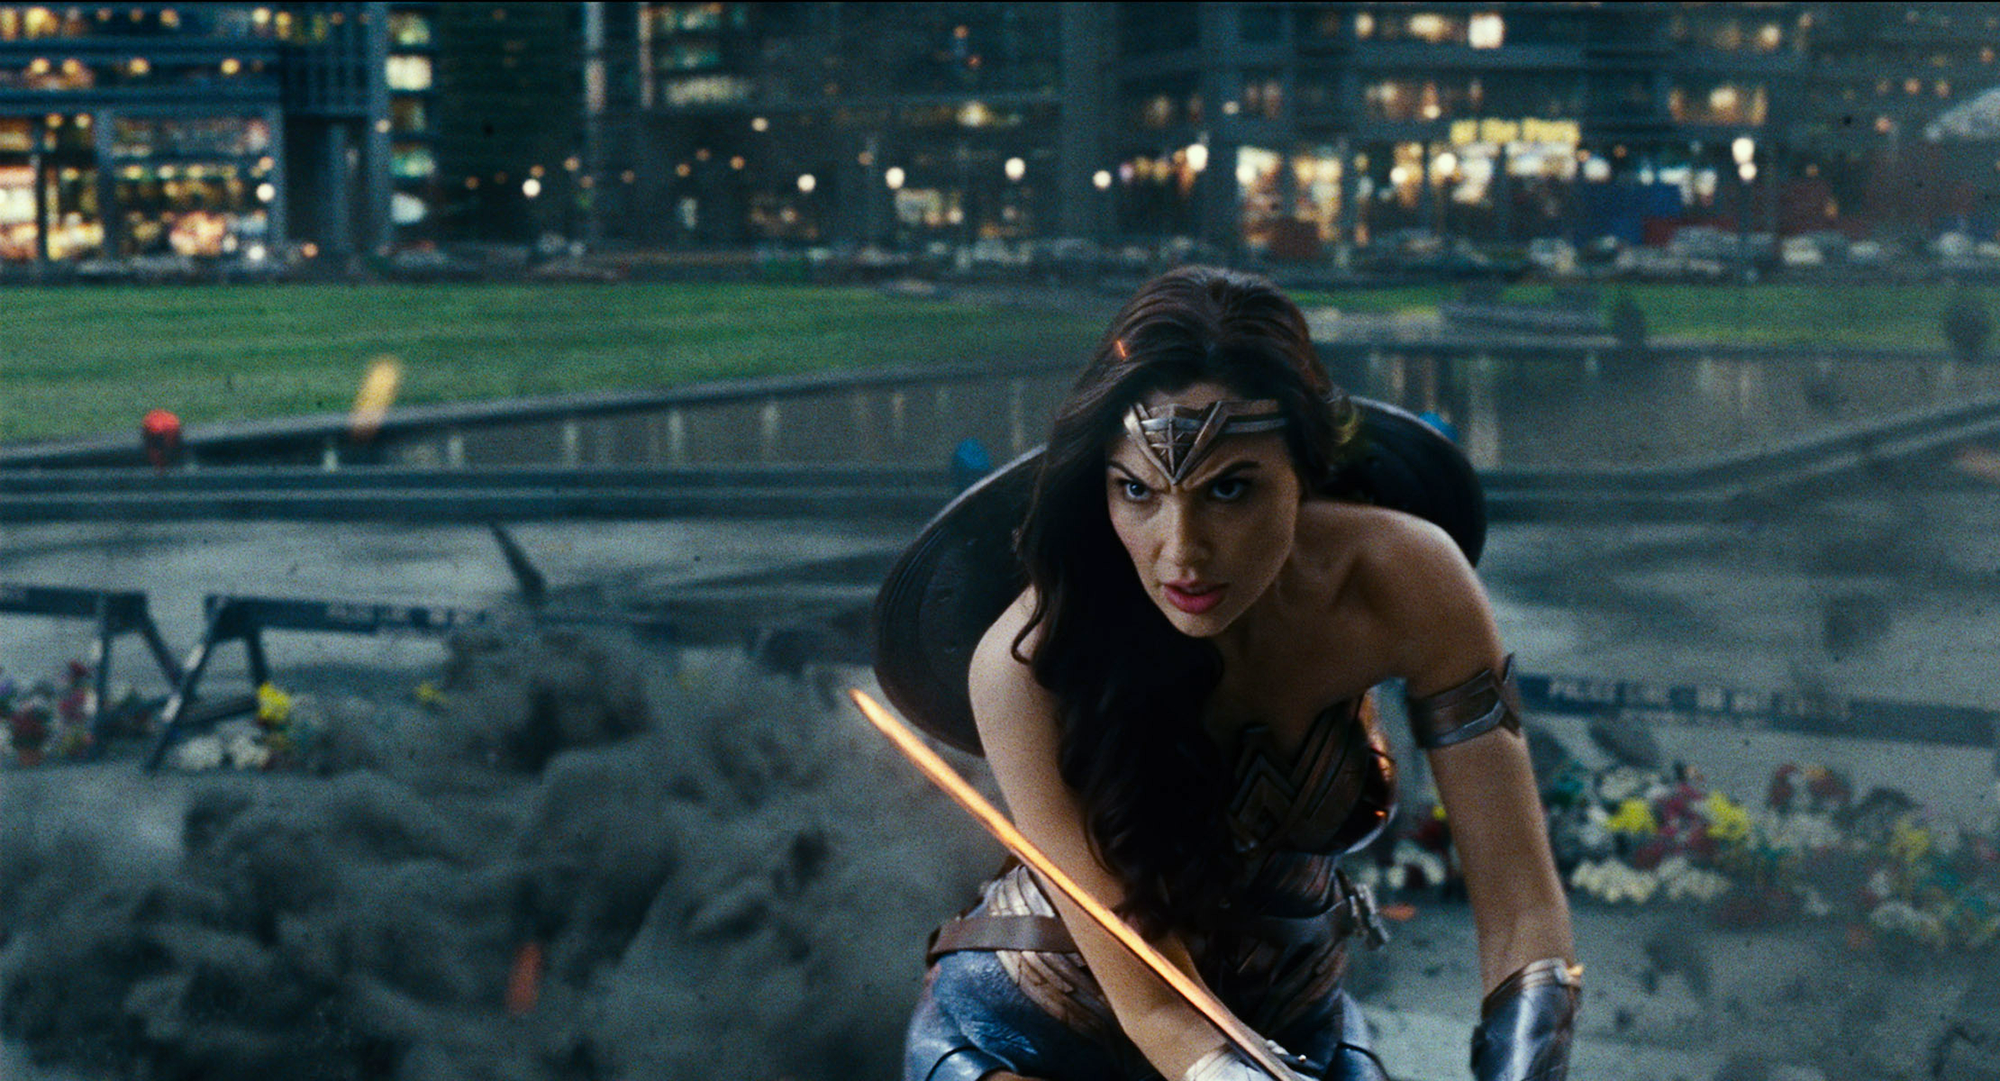 The Best Things Wonder Woman Does in Justice League - Justice League